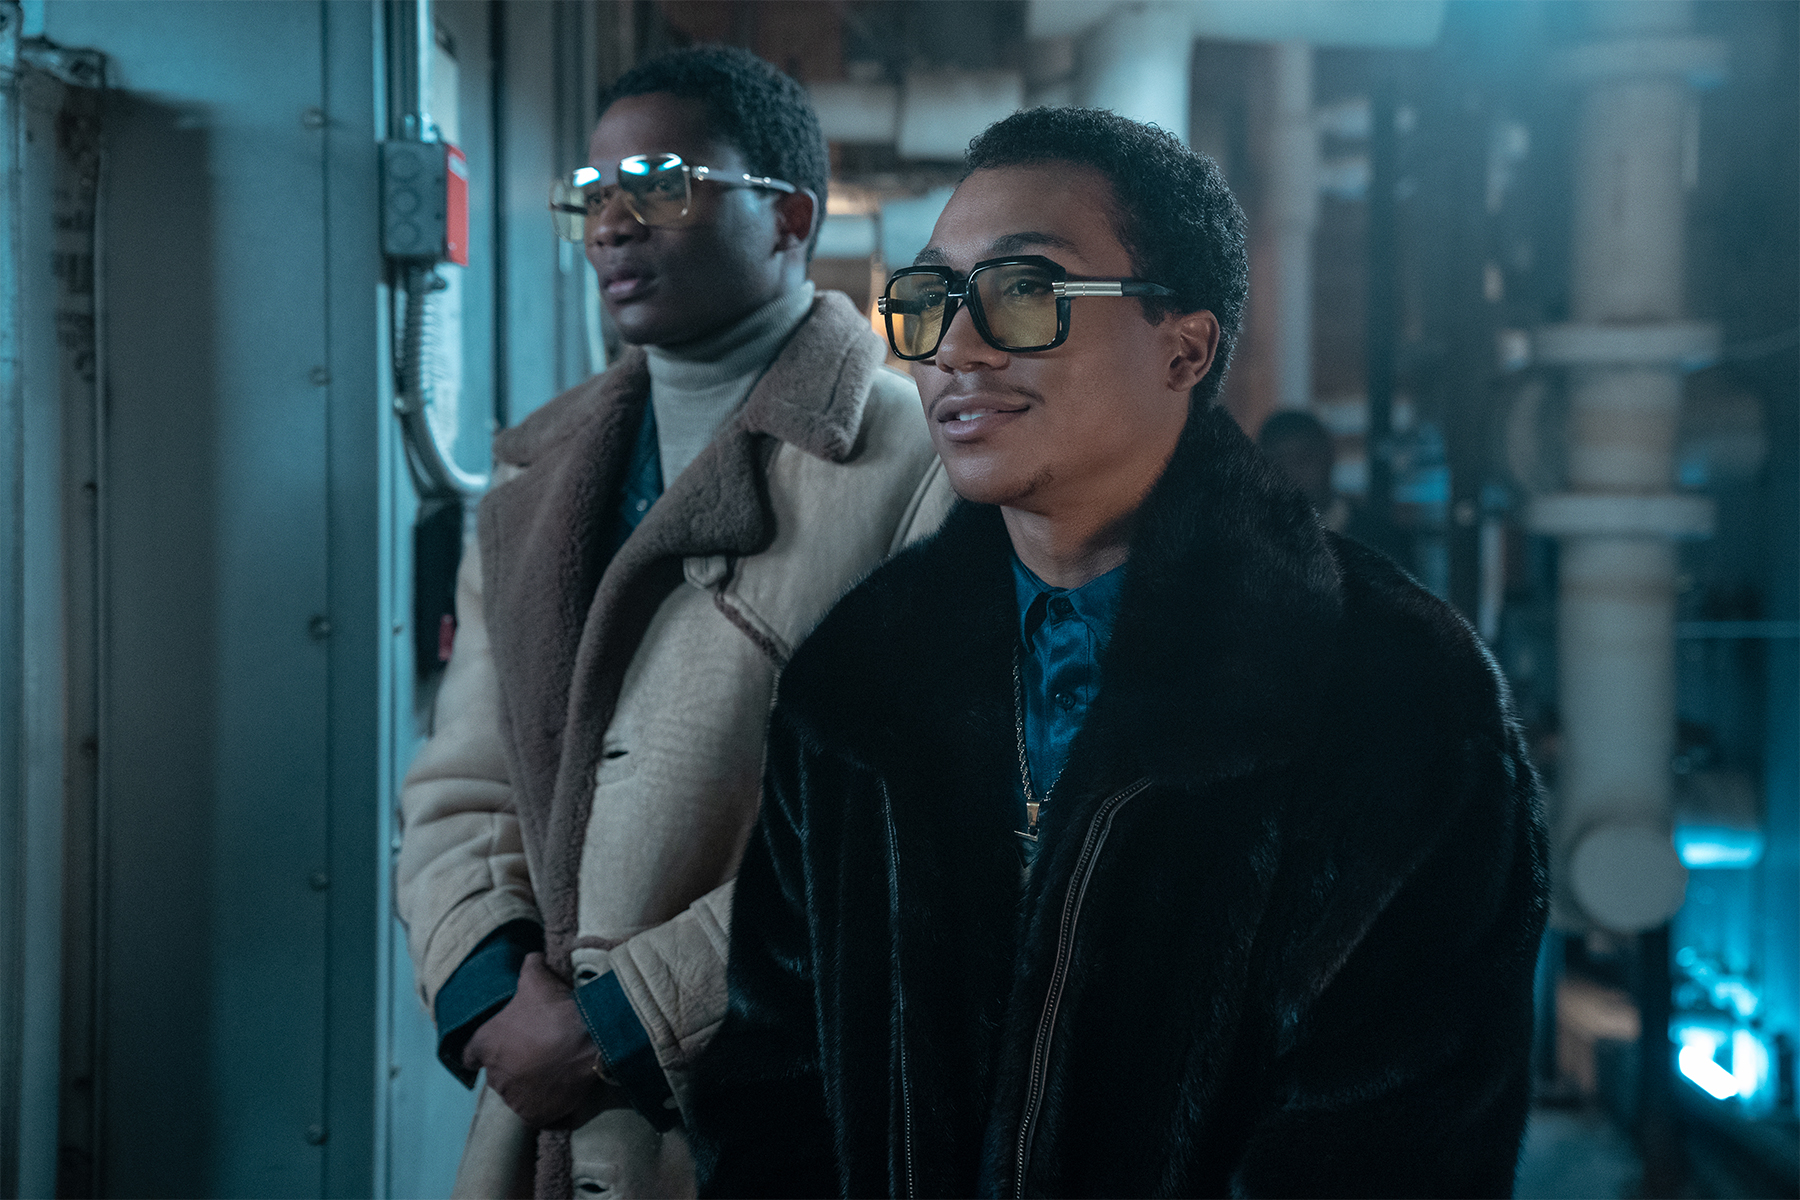 Demetrius Flenory Jr. and Da'Vinchi star as Big Meech and Southwest T in 'BMF.'